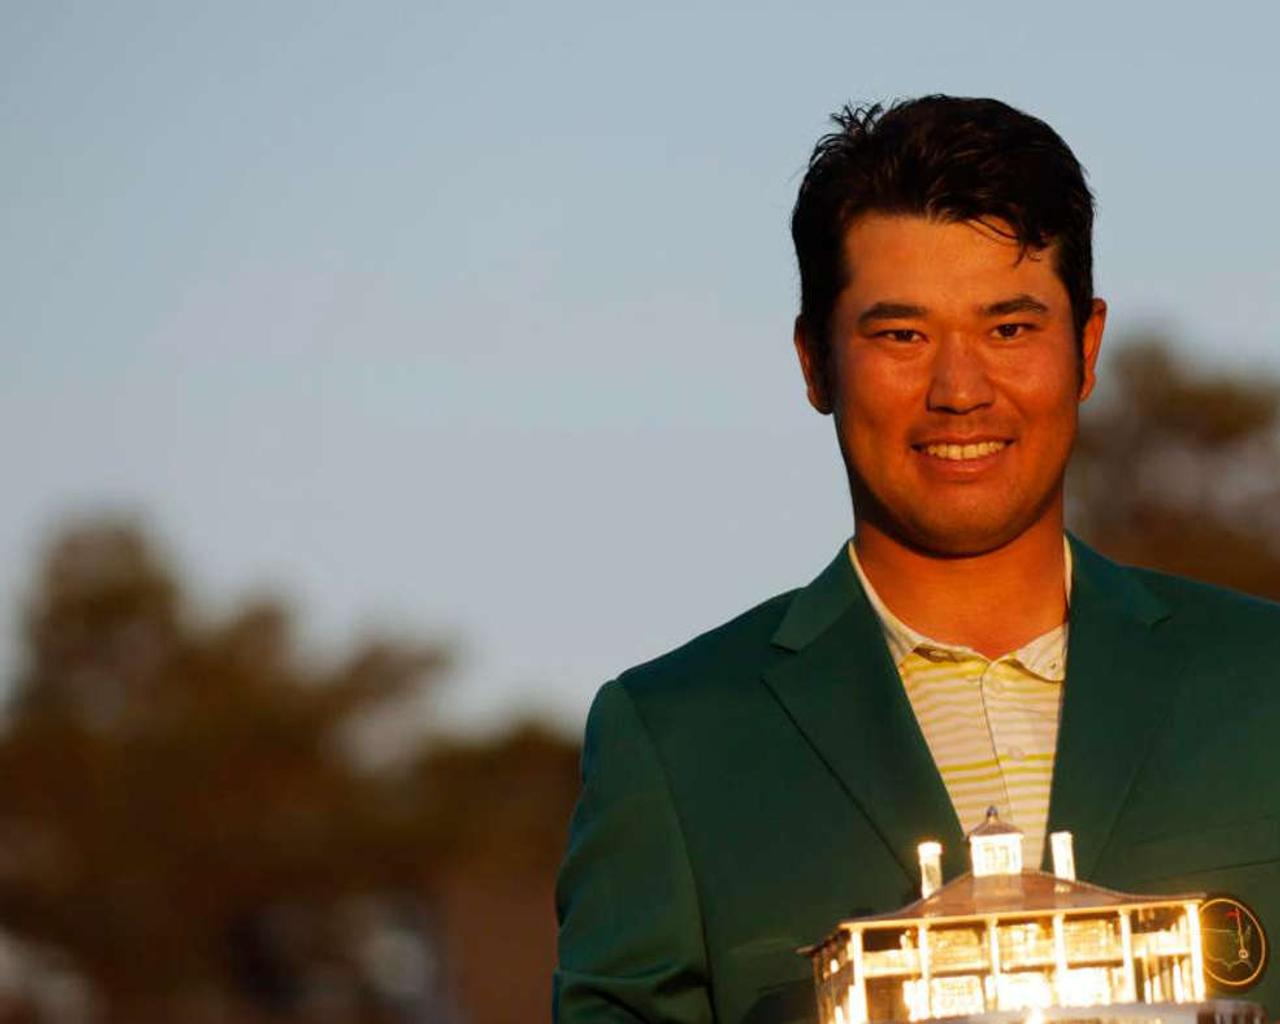 Hideki Matsuyama becomes the first Japanese male athlete to win a Masters in nail finishing